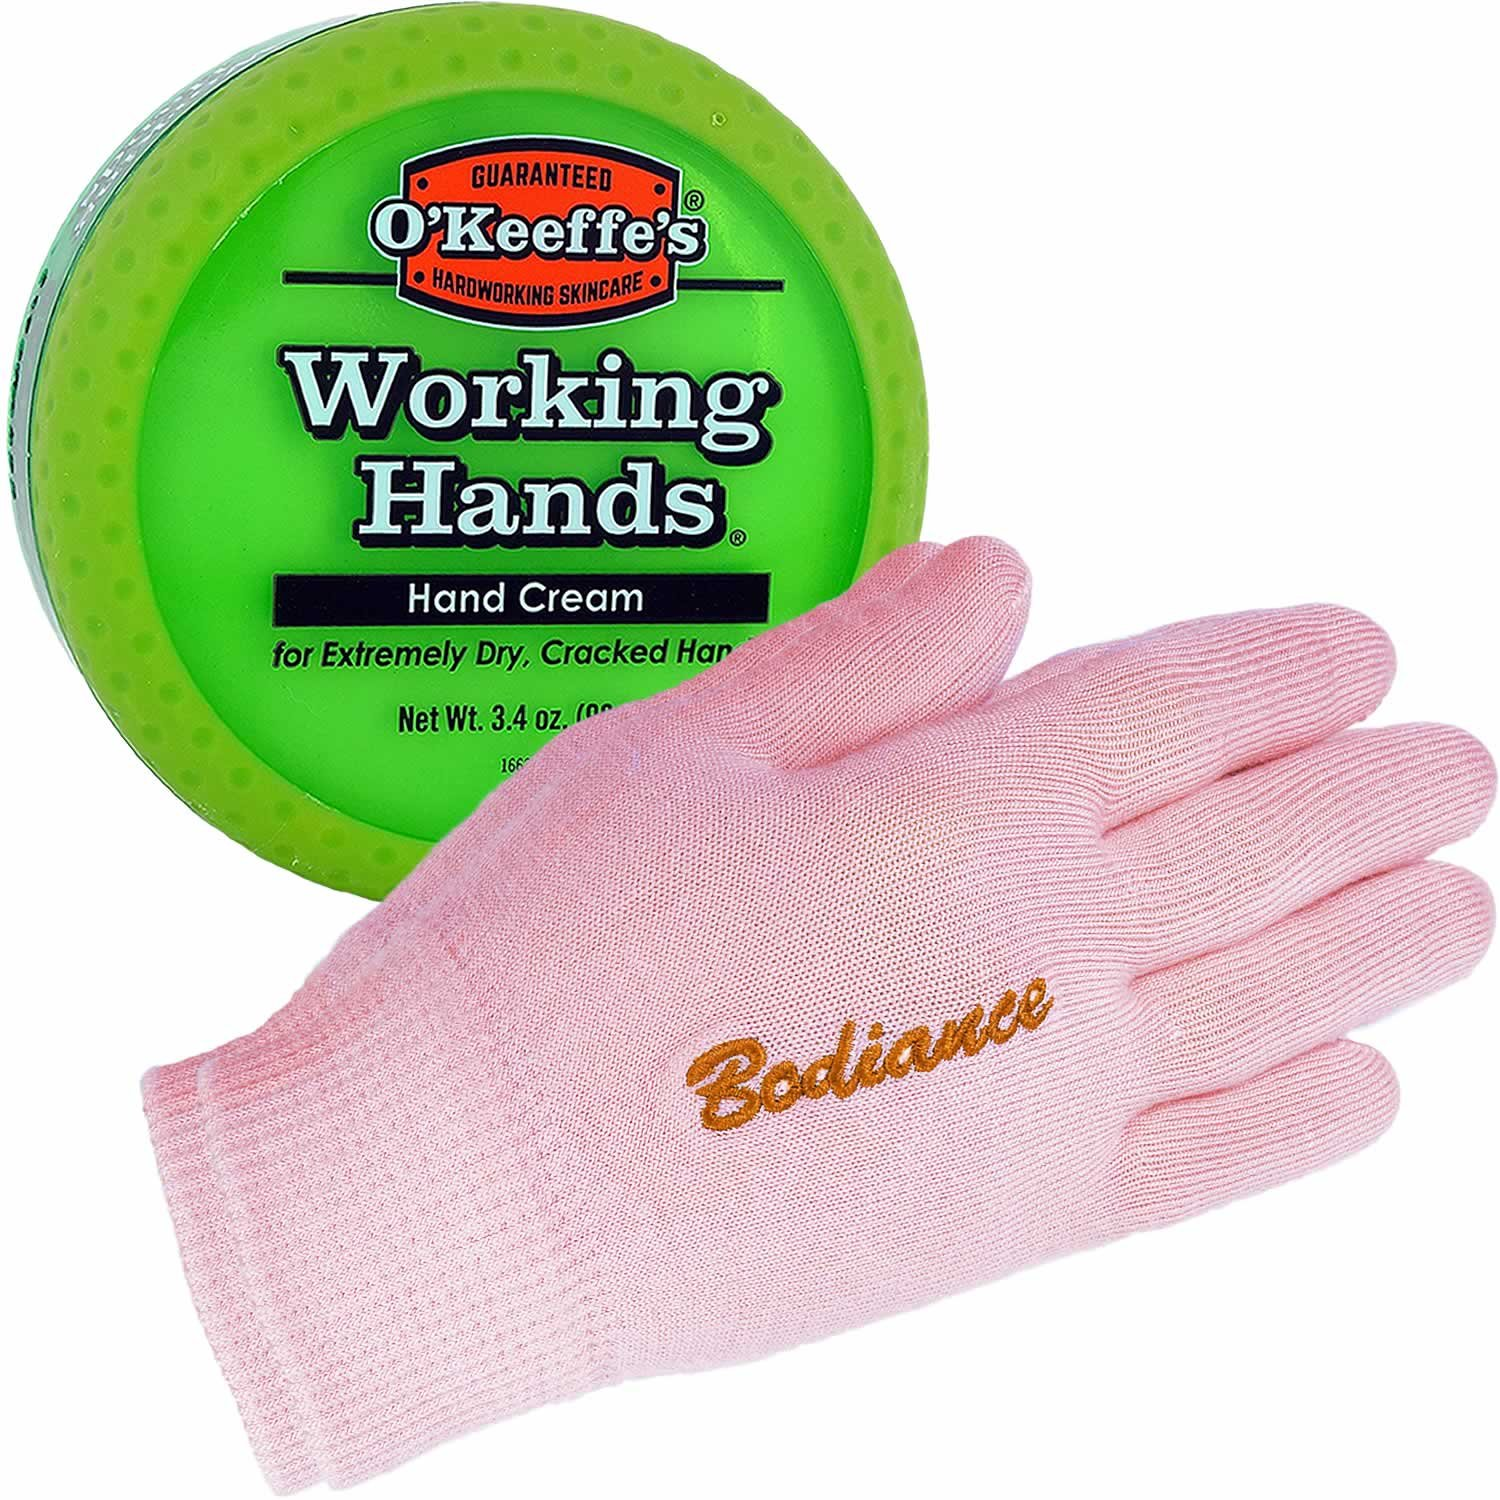 Hand Cream for Dry Cracked Hands Repair Gloves Bundle - Working Hands Cream O'Keeffe's, Odorless, Non Greasy, 3.2 oz, Dry Hand Treatment Gel Gloves, Pink, Unscented, 1 pair Bodiance